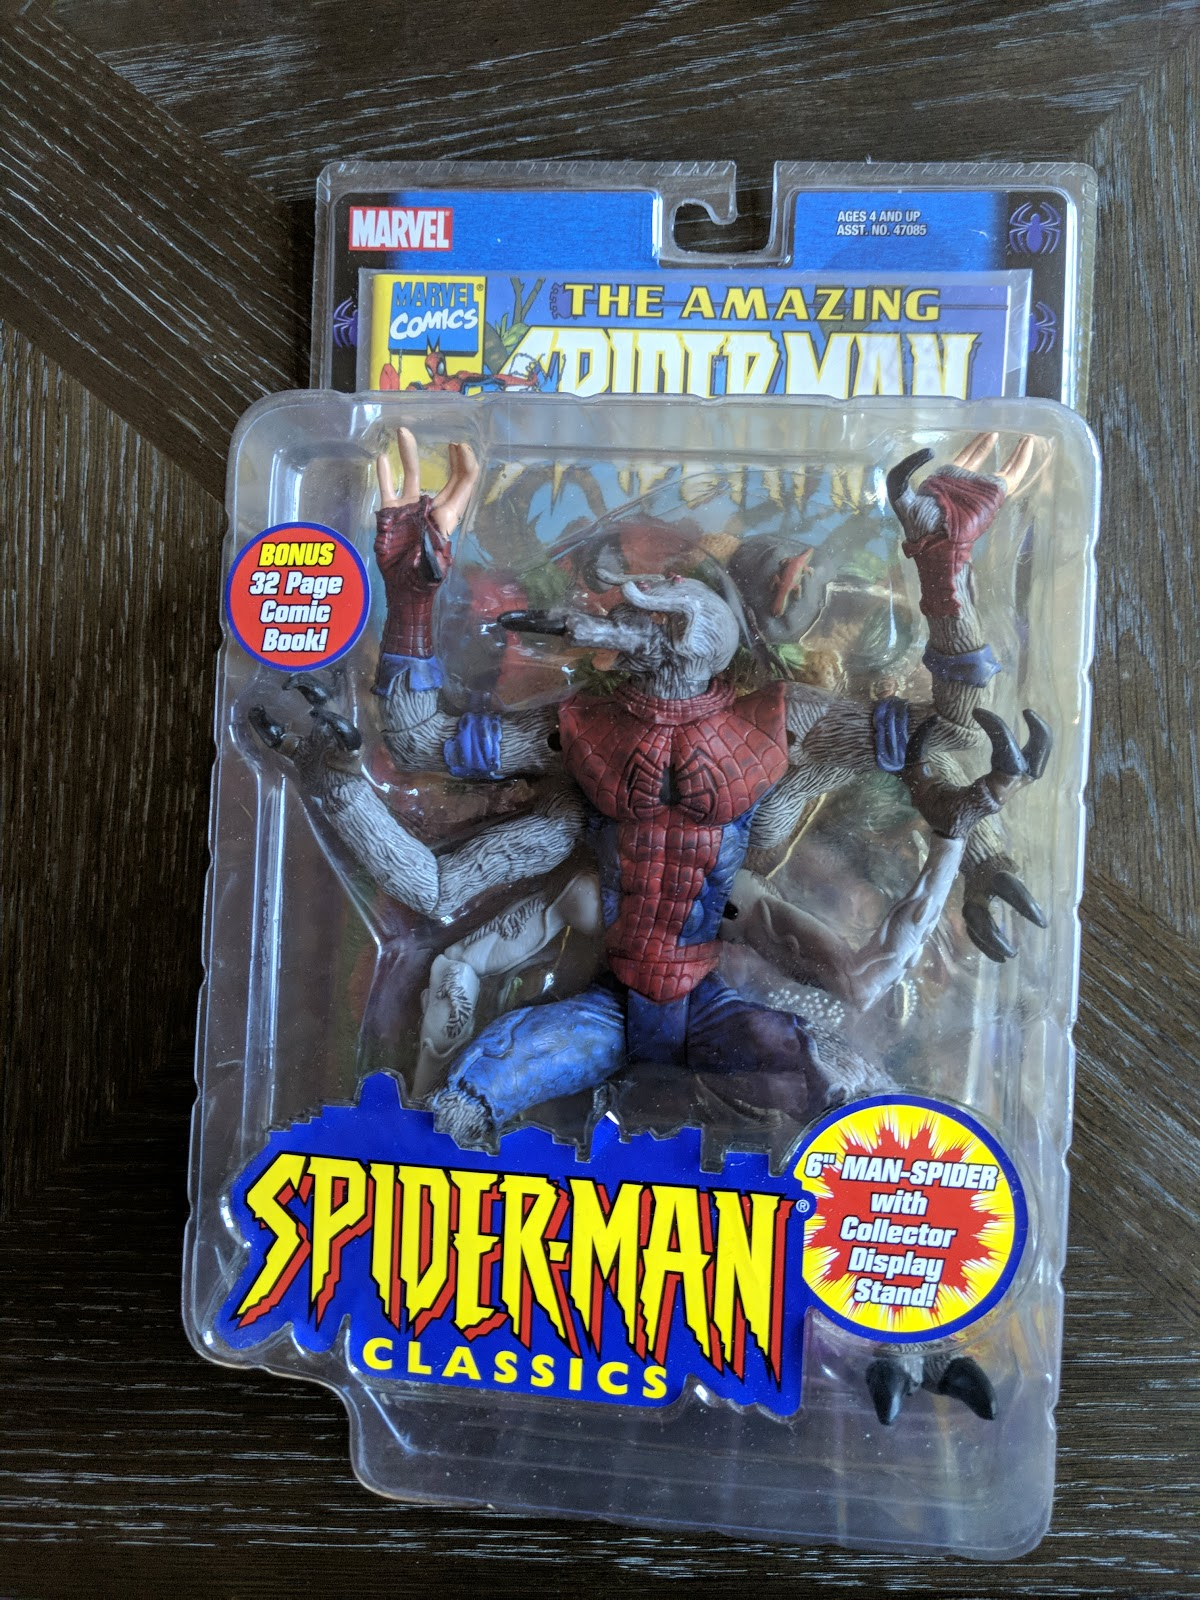 Action figure image